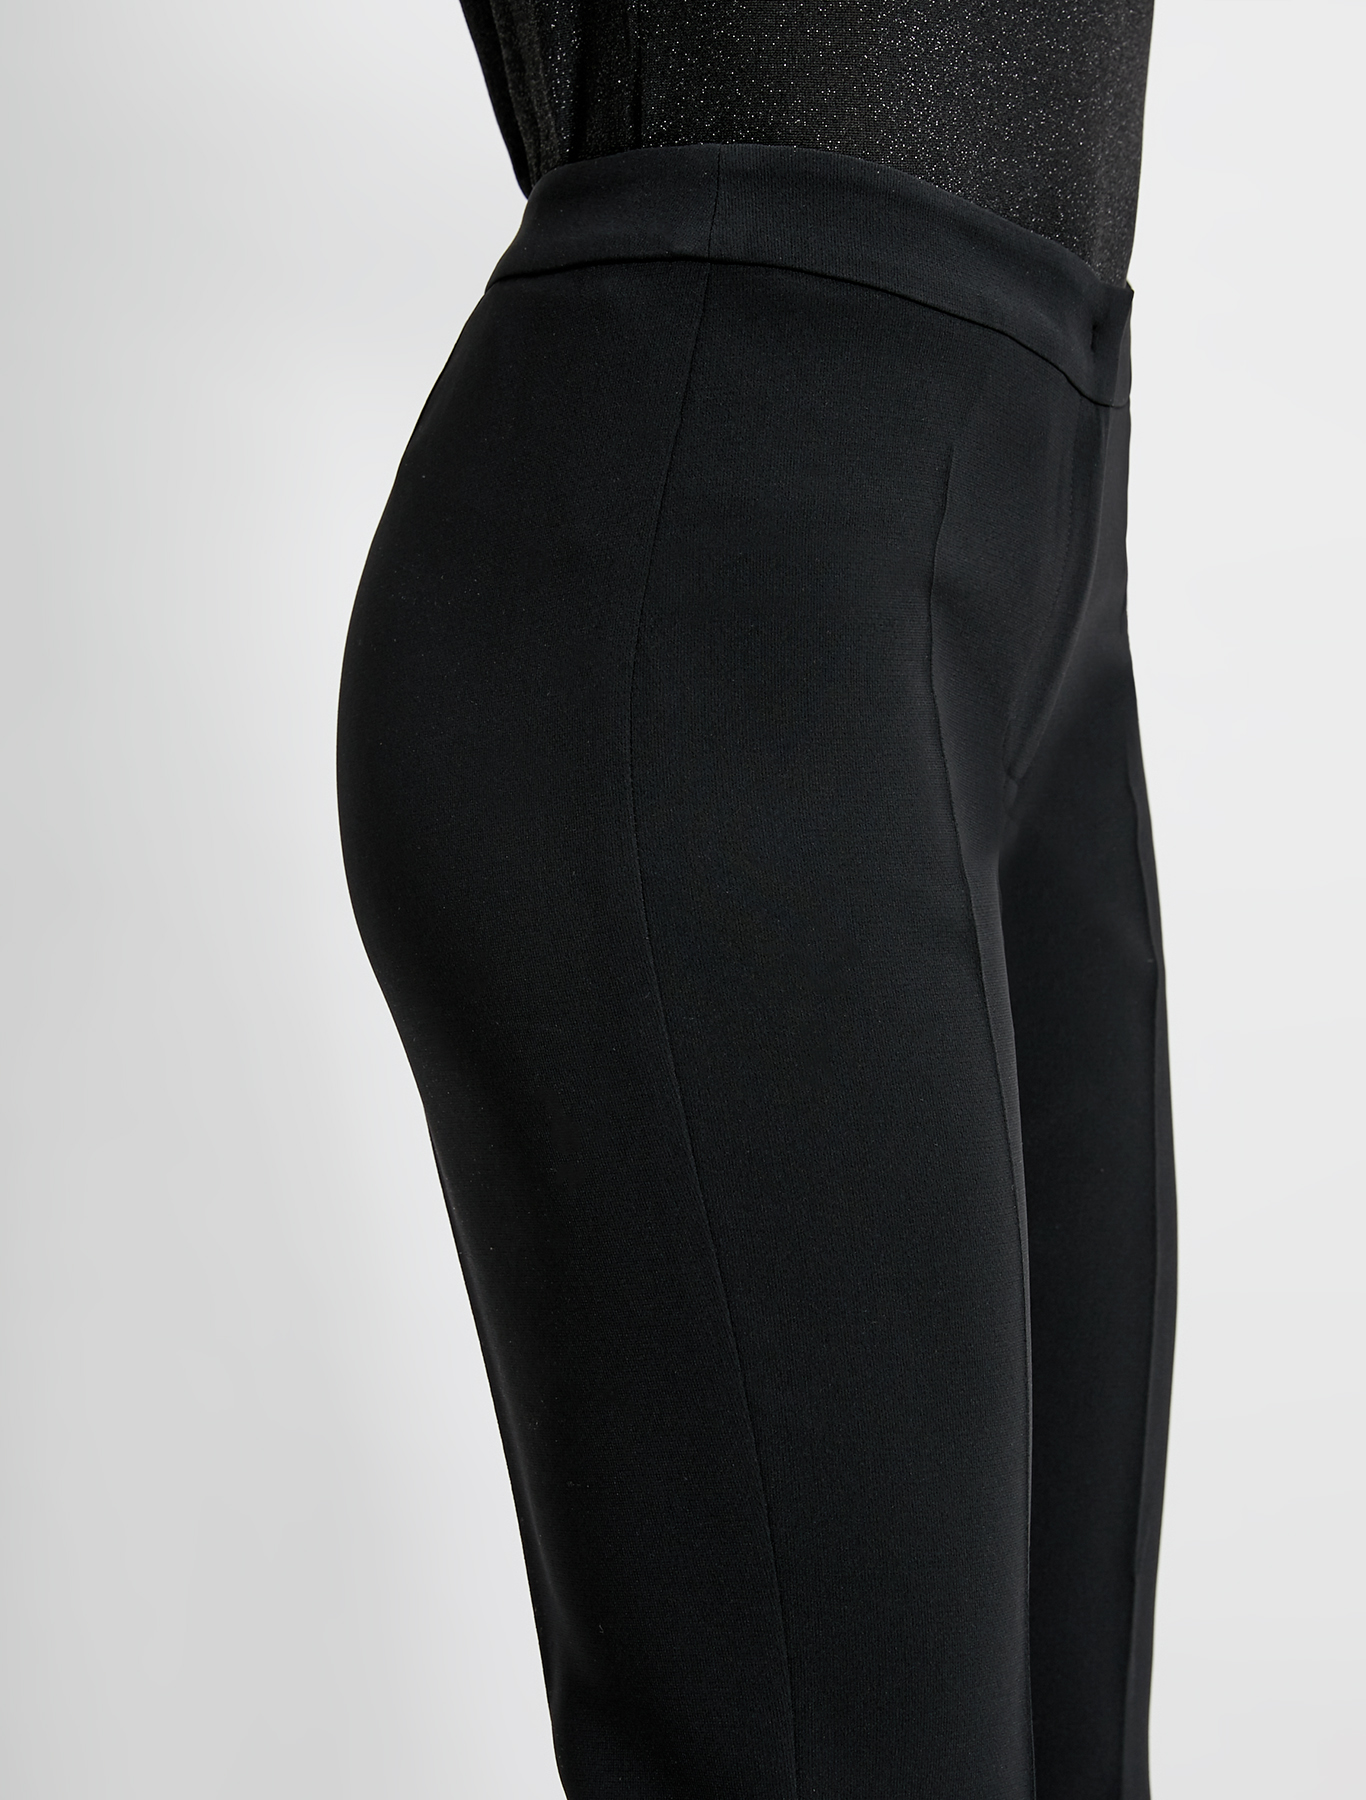 Slim-fit trousers in flowing fabric - black - pennyblack